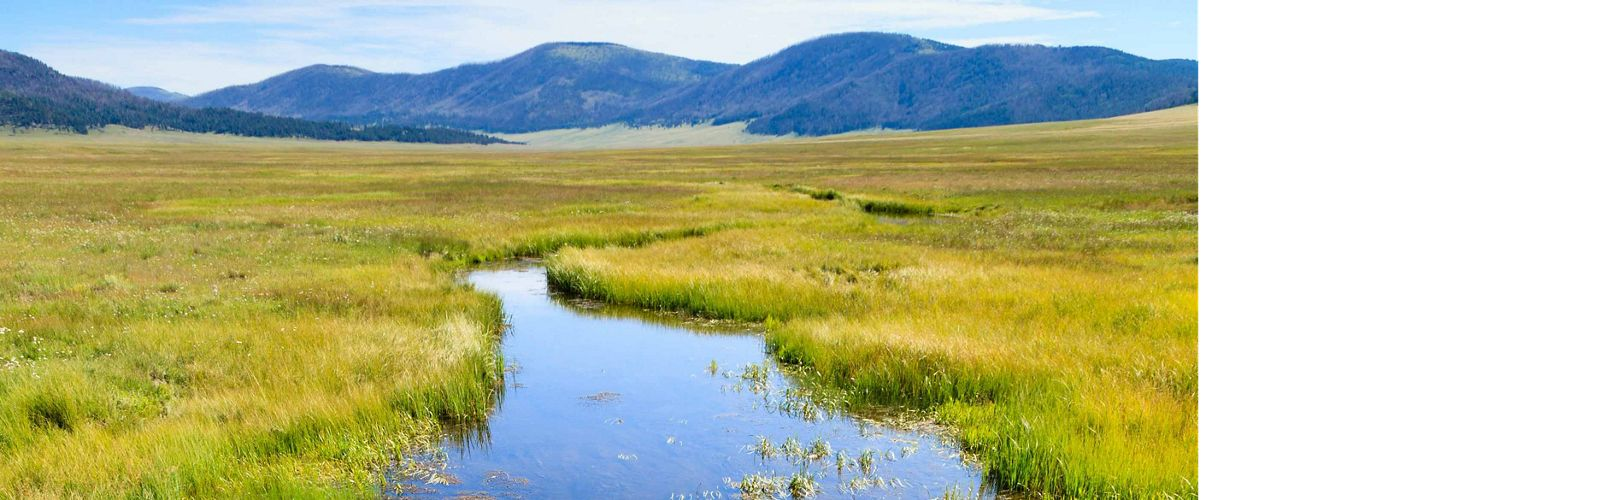 New Mexico's Rio Grande and its tributaries supply water to more than half of New Mexico's population.